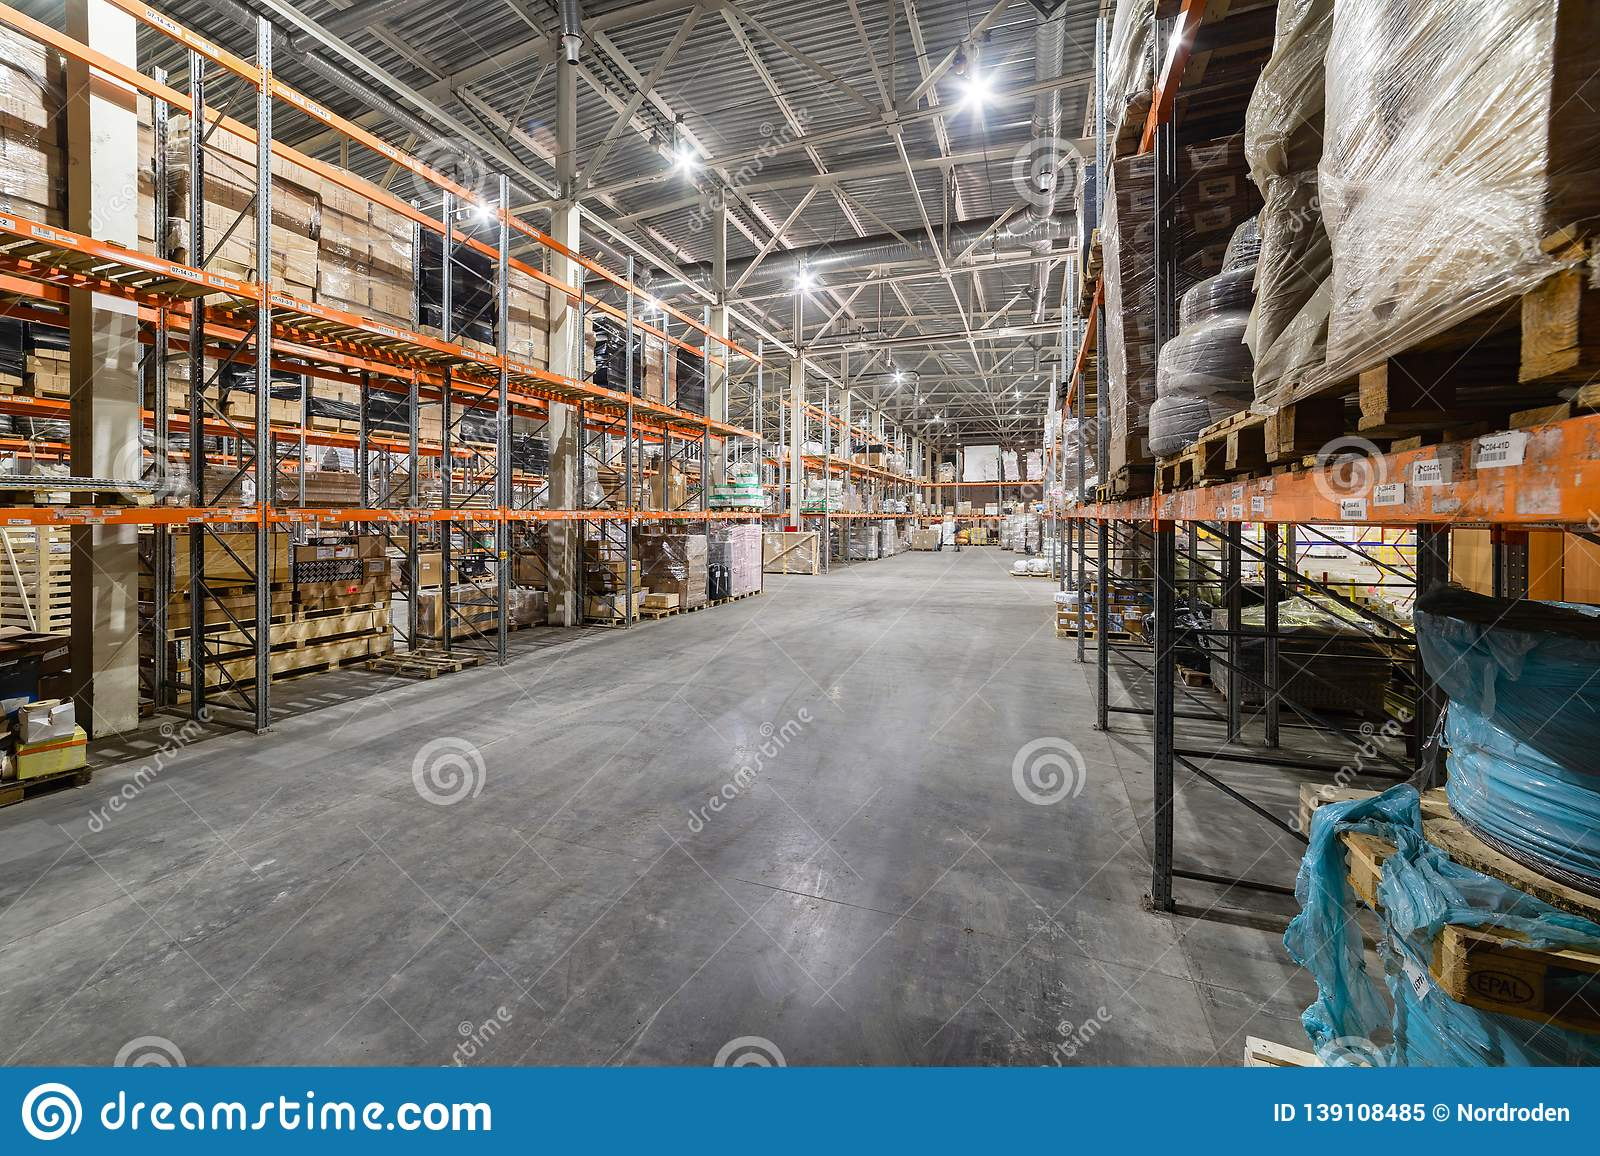 Long Shelves With A Variety Of Boxes And Containers Stock